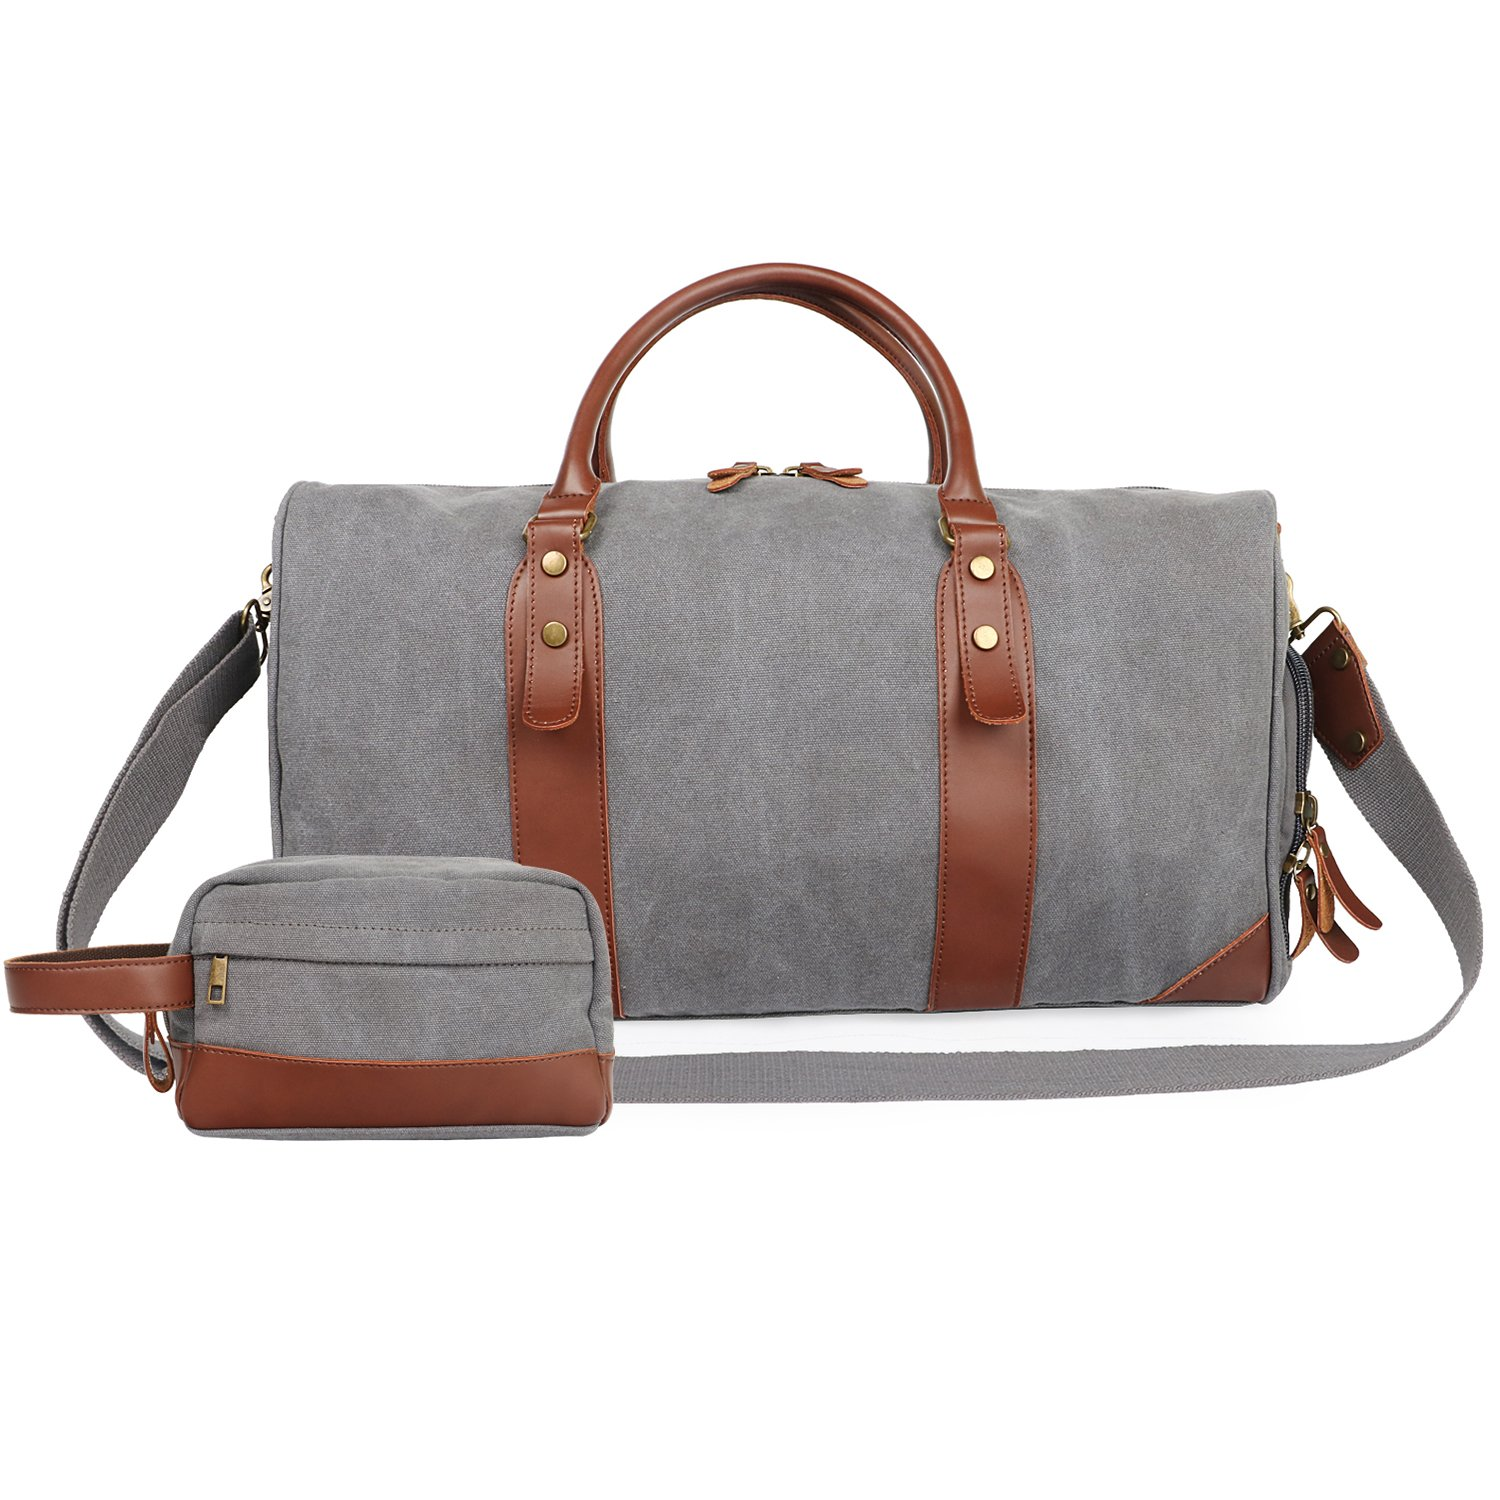 Oflamn 21'' Large Duffle Bag Canvas Leather Weekender Overnight Travel Carry On Bag - Free Toiletries Bag (Grey)